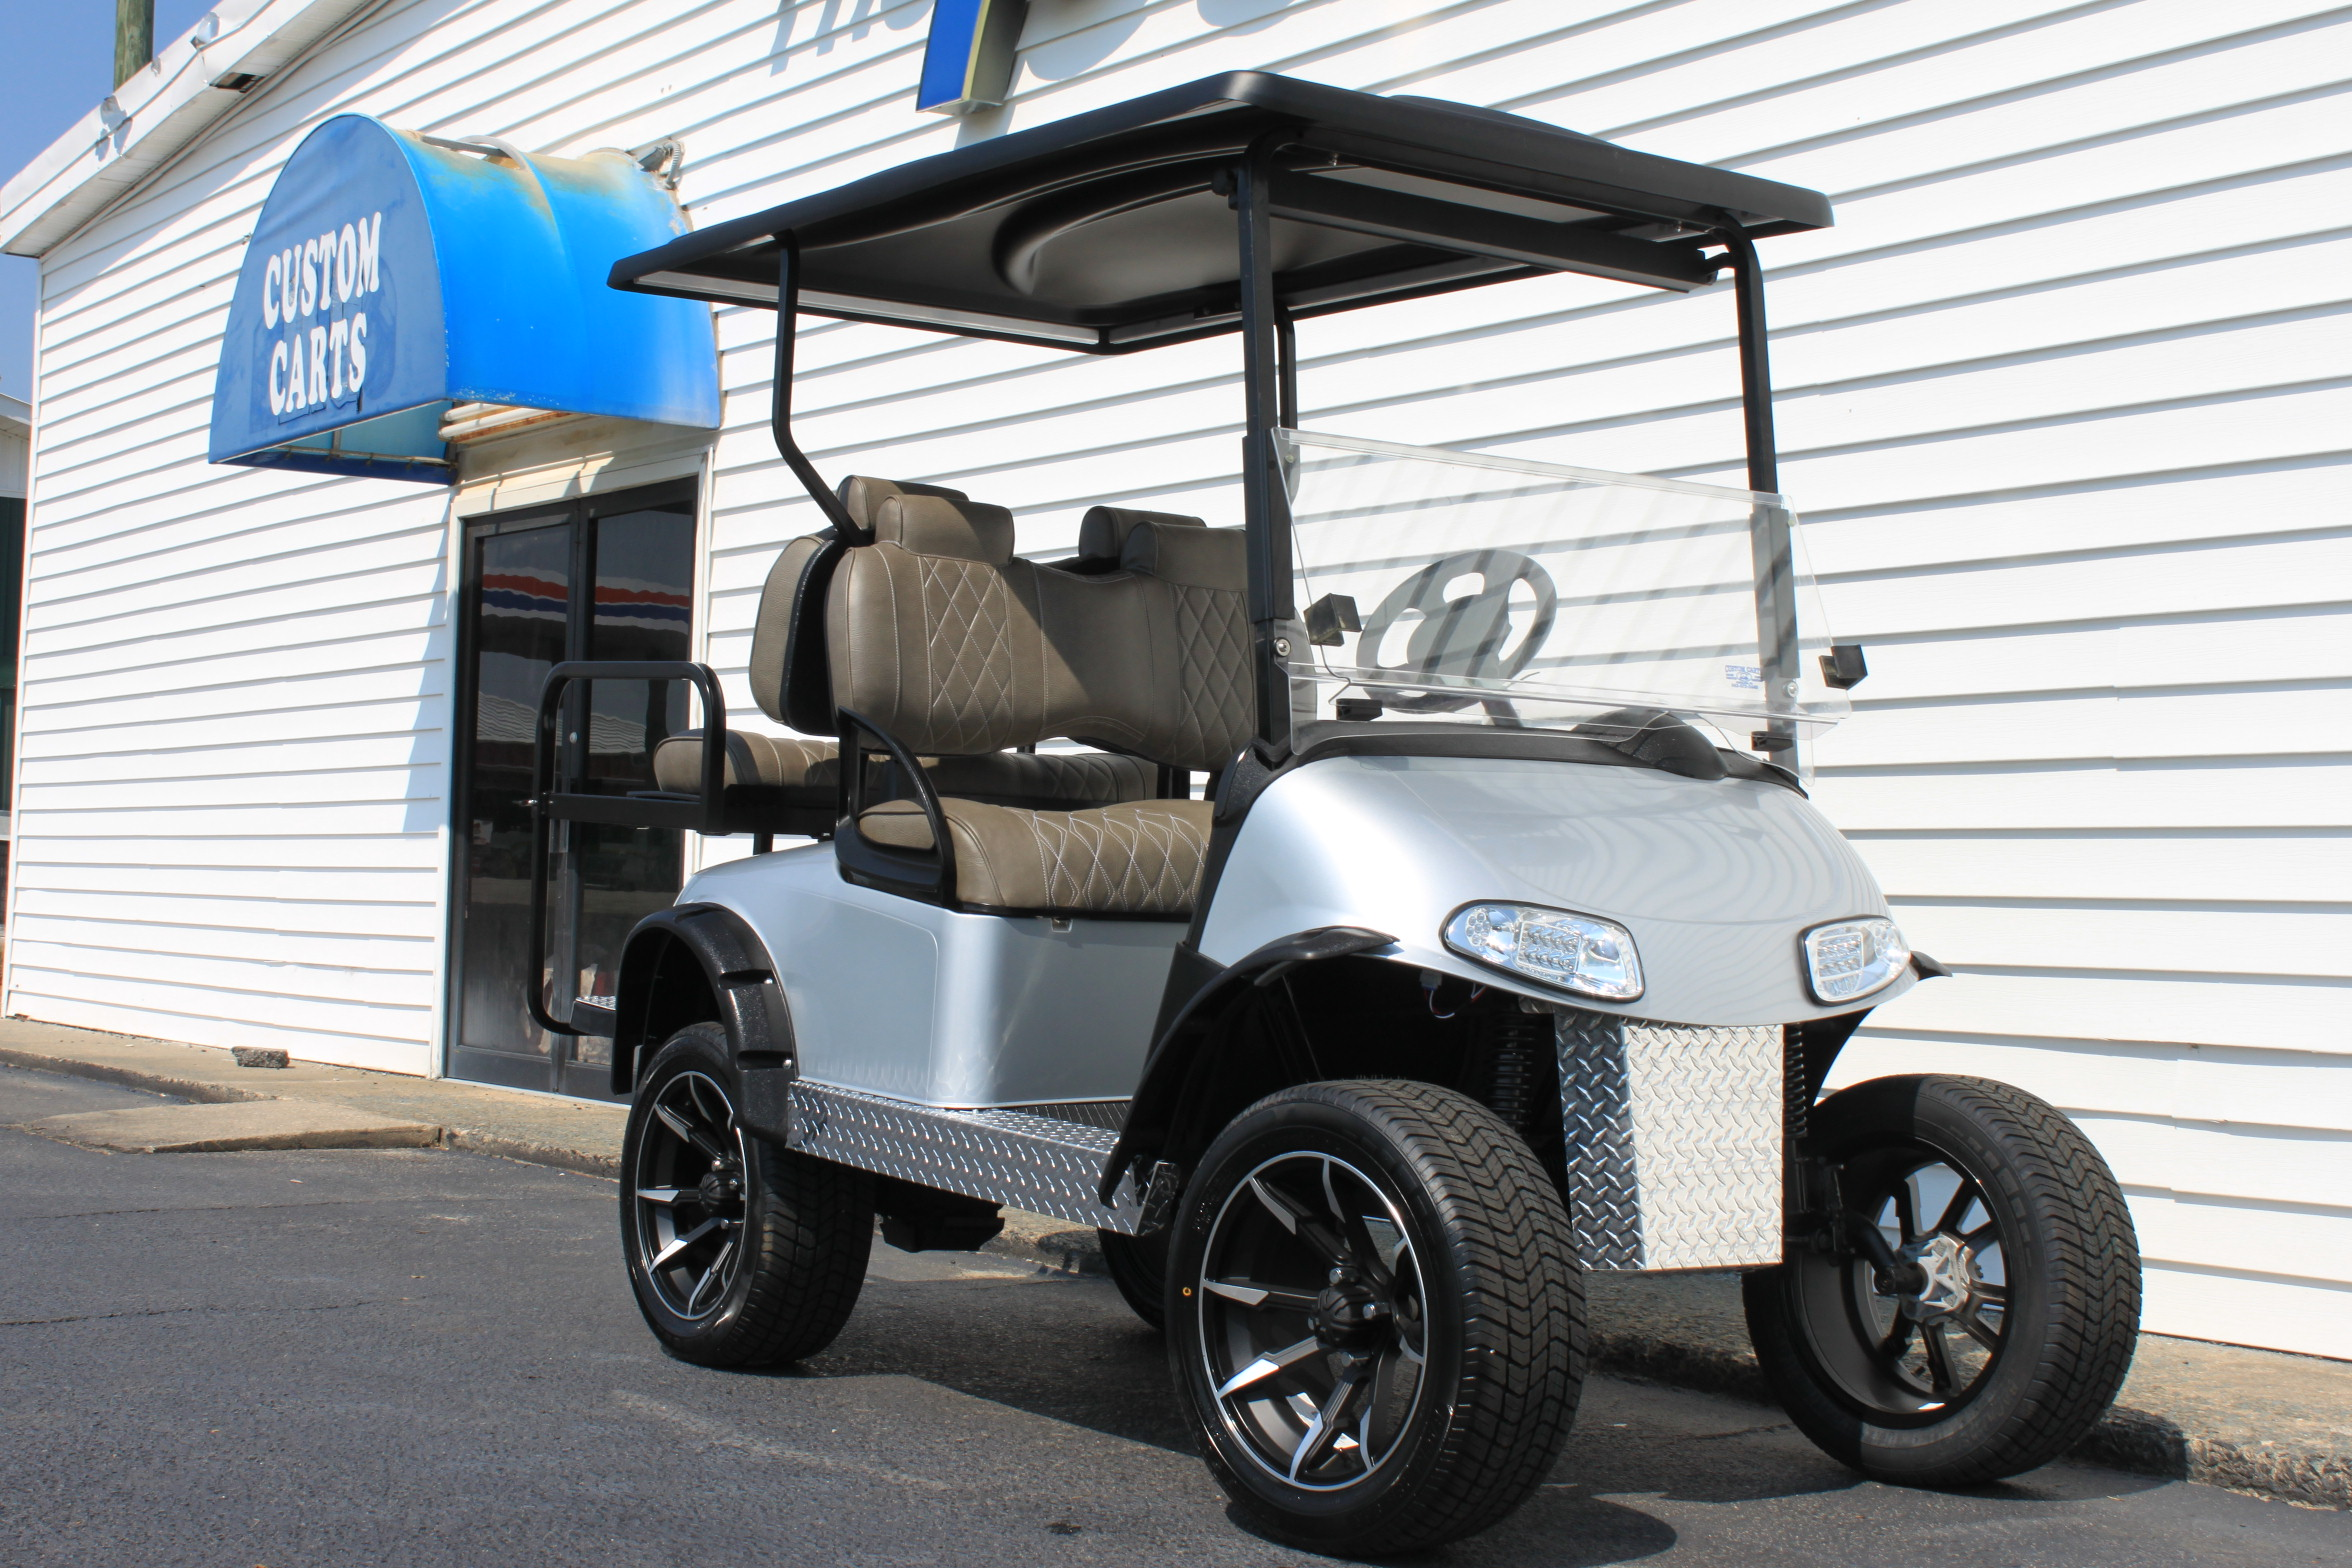 STOCK# 5408316, 2016 E-Z-GO RXV, 48 VT GOLF CART